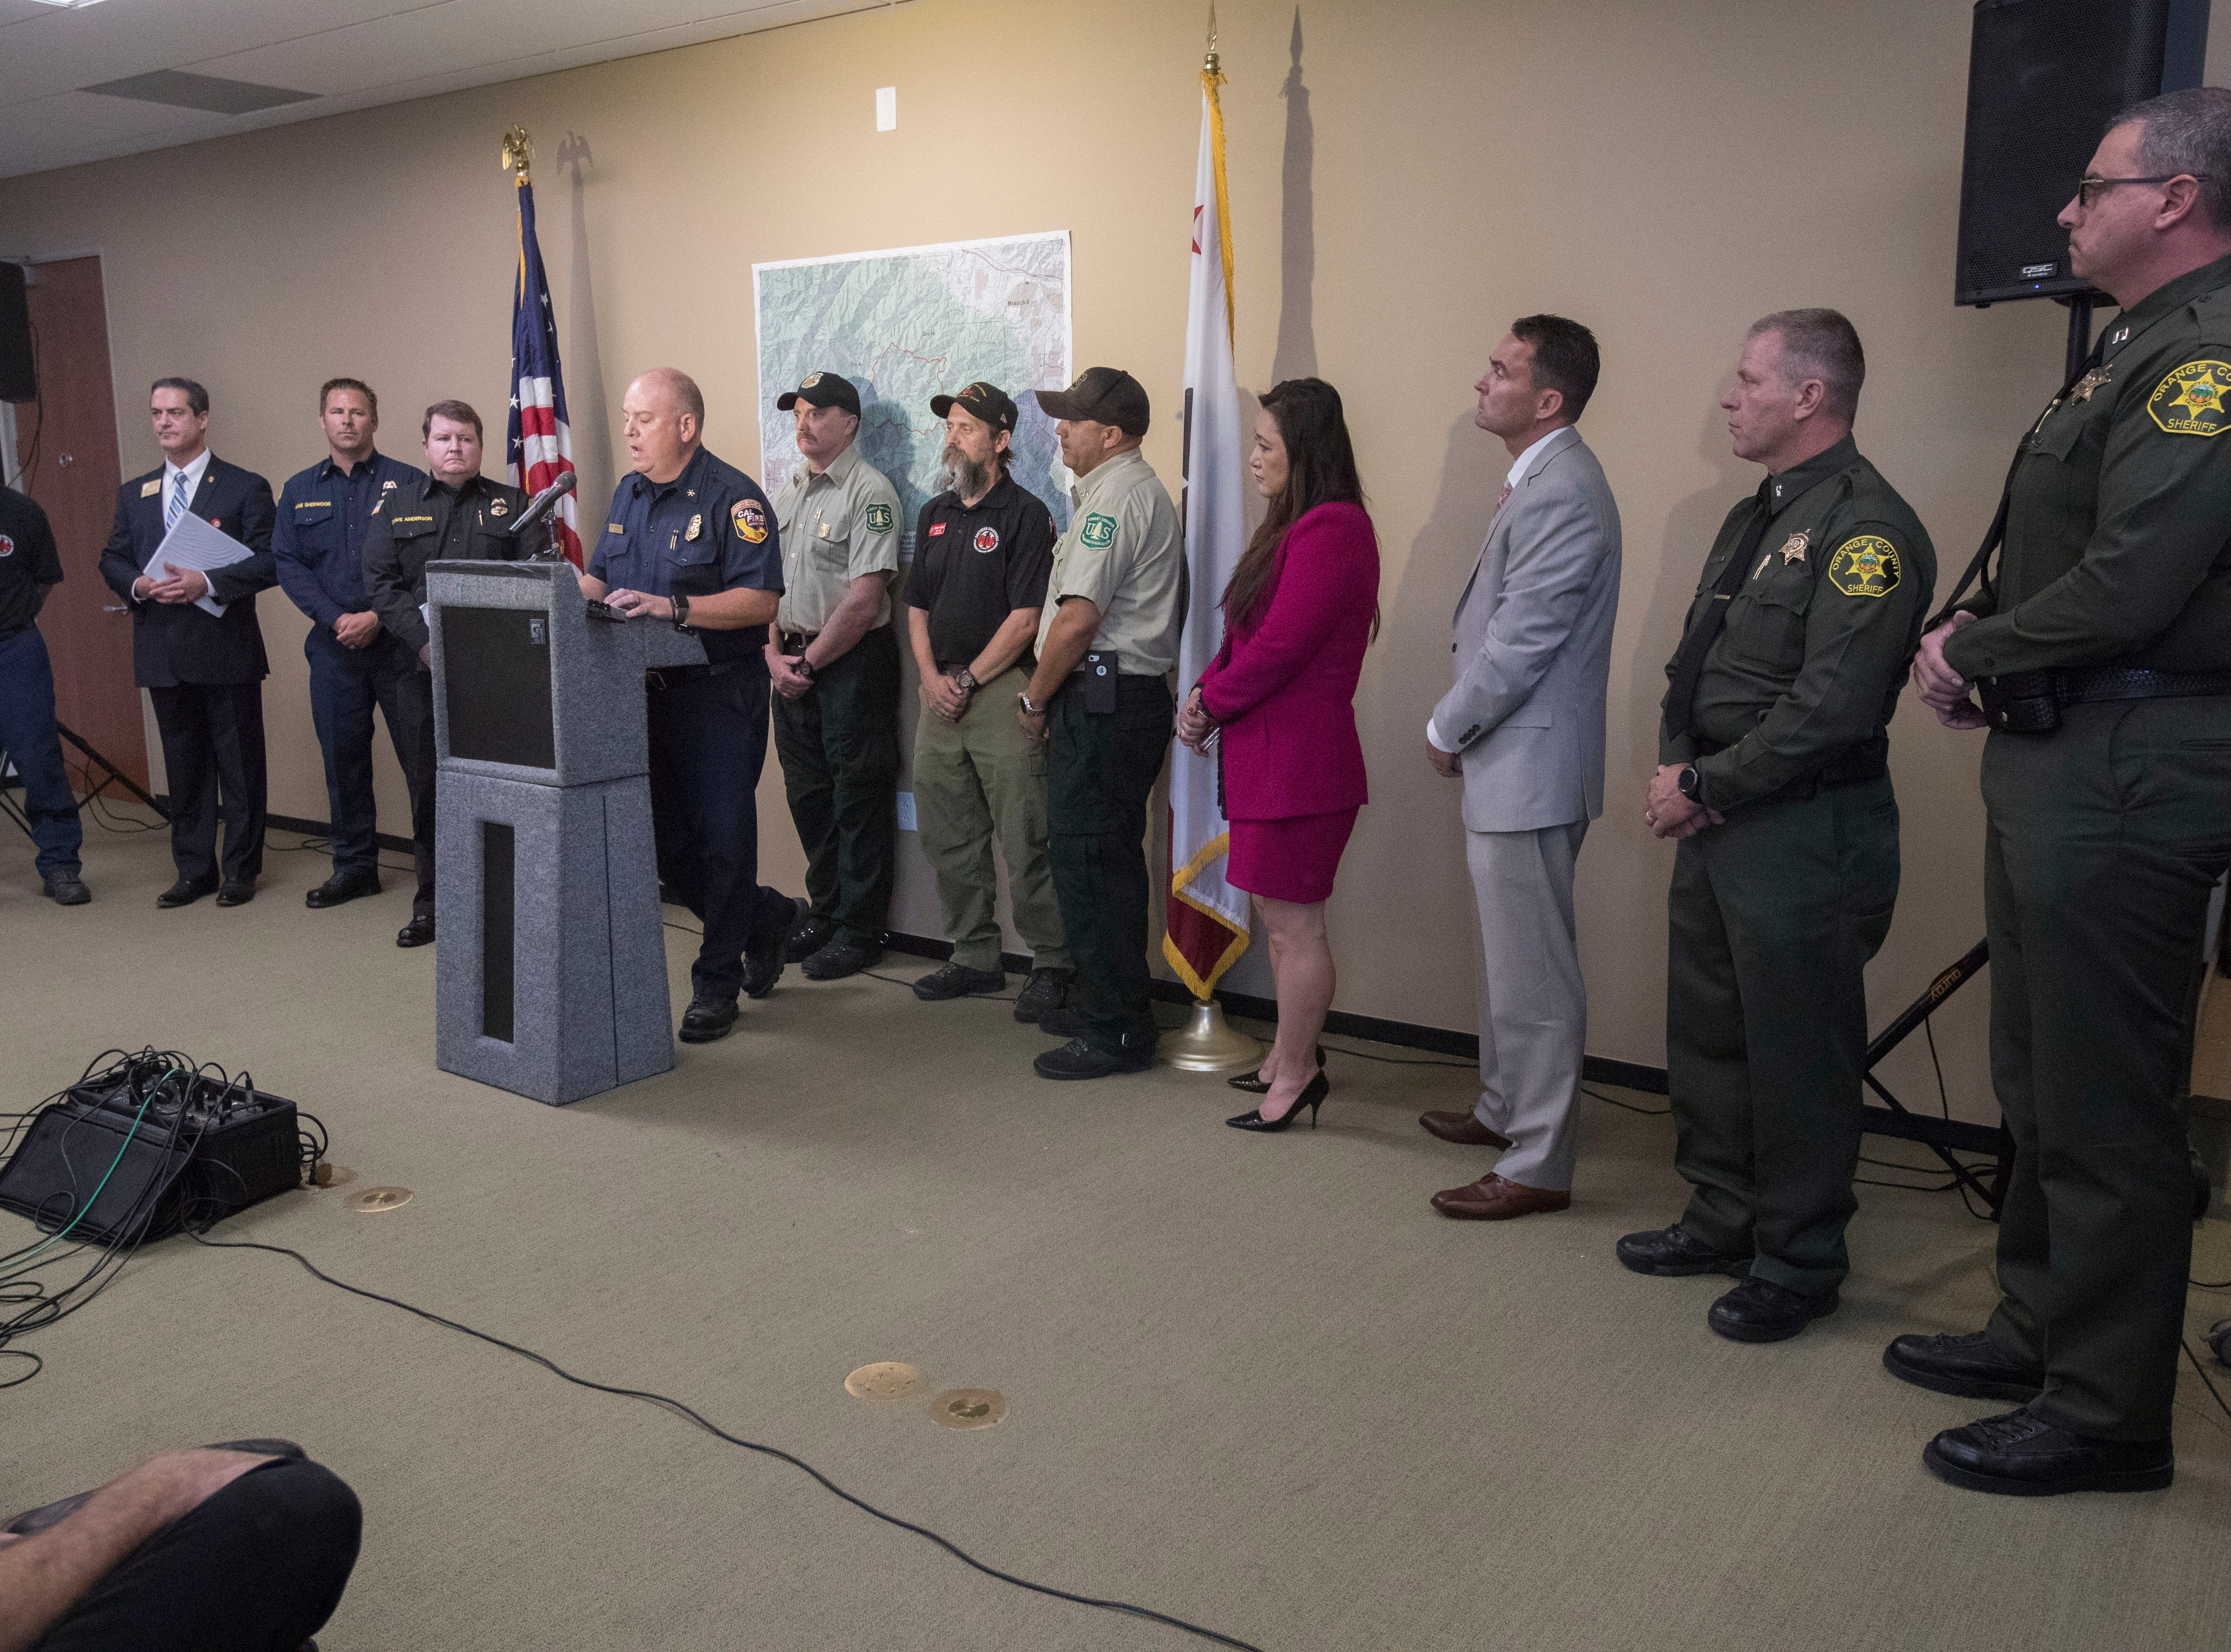 Government officials speak on the arrest of an arson suspect in the Holy Fire at a press conference in Irvine, California on August 8, 2018.